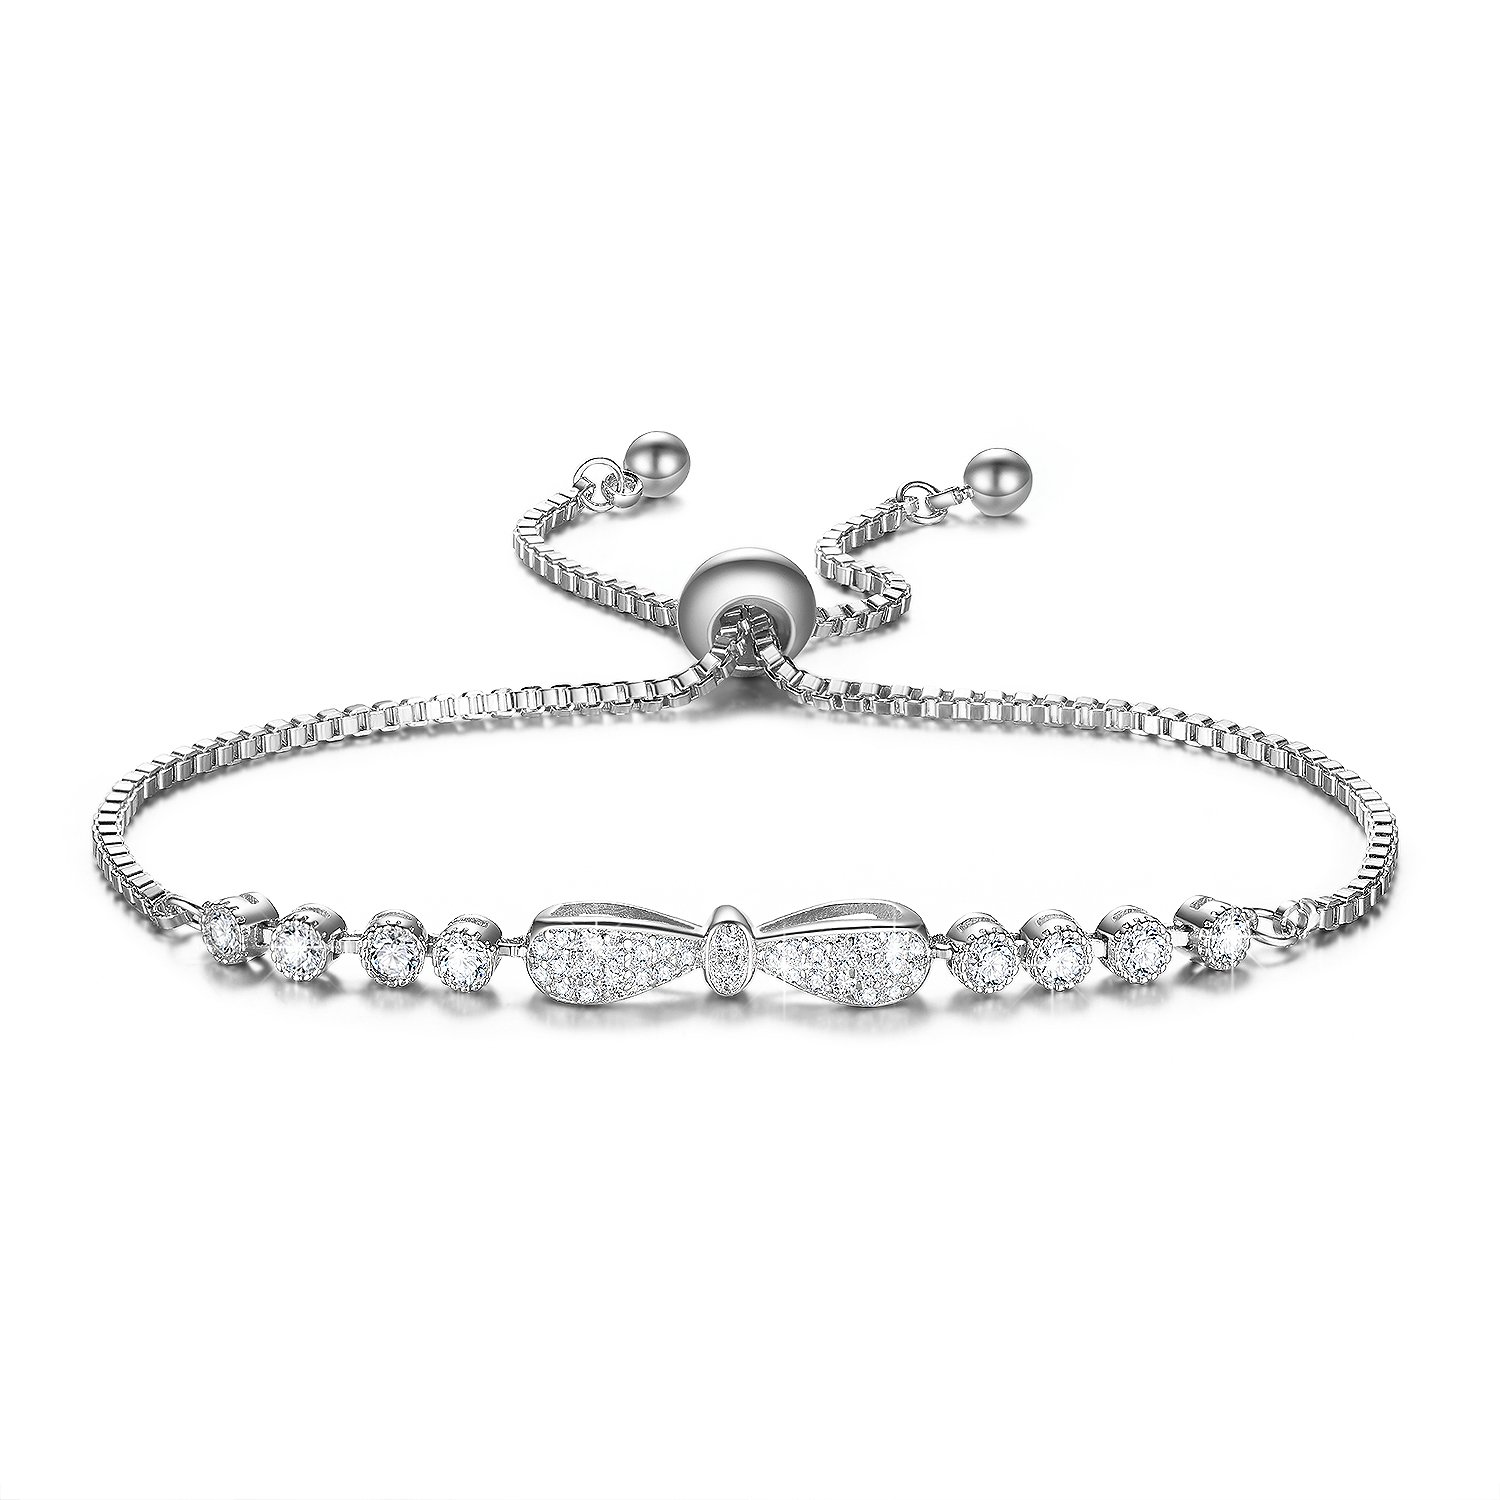 DIFINES Fashion Cute Bow Knot Charm 18k White Gold Plated CZ Diamond Adjustable Tennis Bracelets for Women Girls